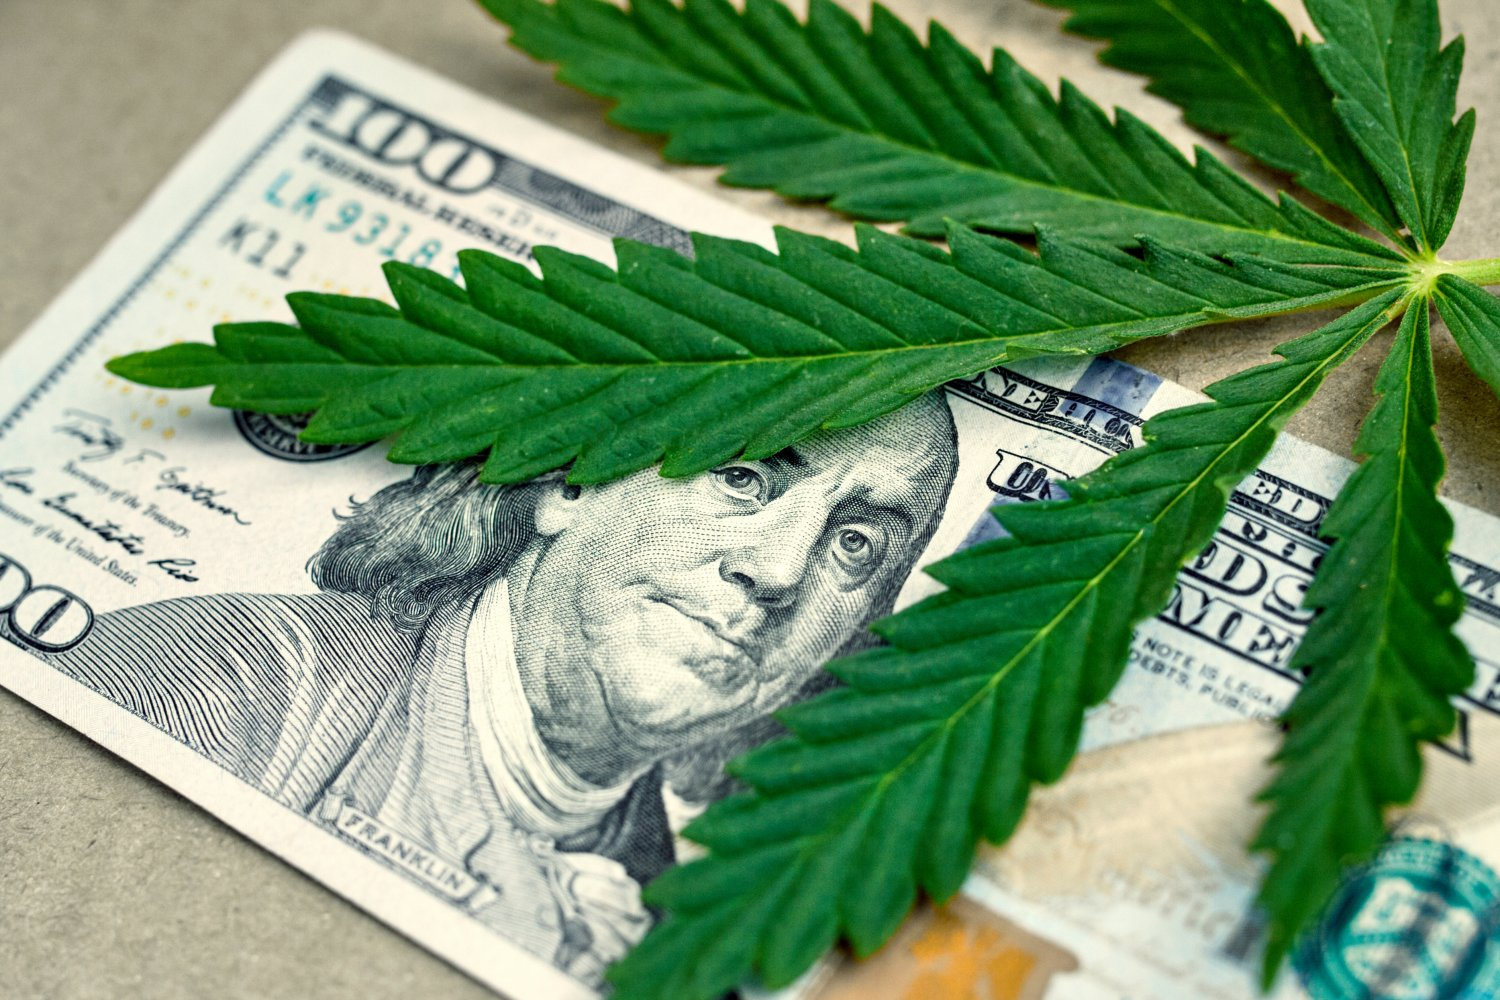 https://www.potnetwork.com/news/treasury-secretary-calls-marijuana-friendly-banking